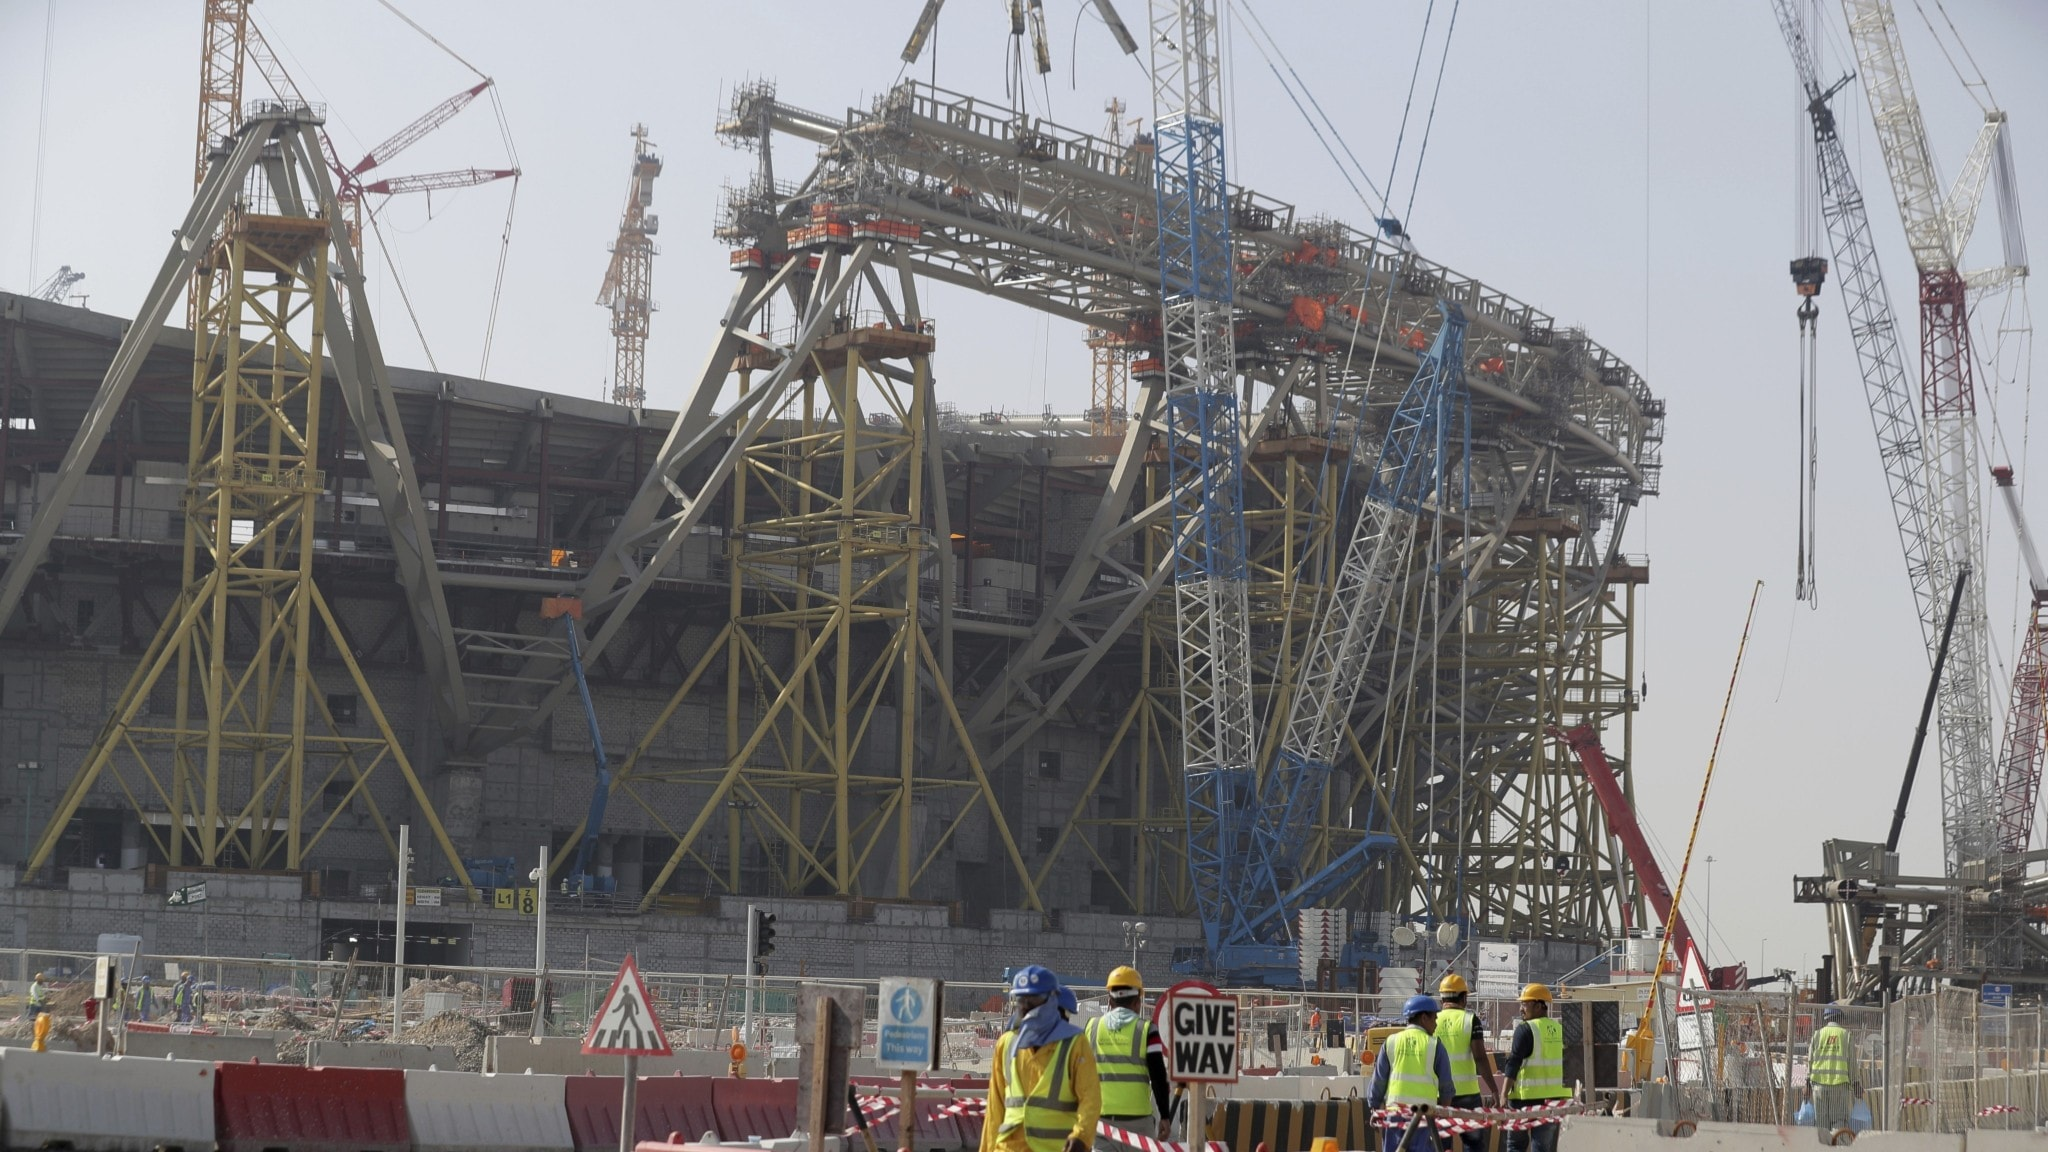 cranes and scaffolding around a stadium that is under construction. workers wearing bright vests in the foreground.